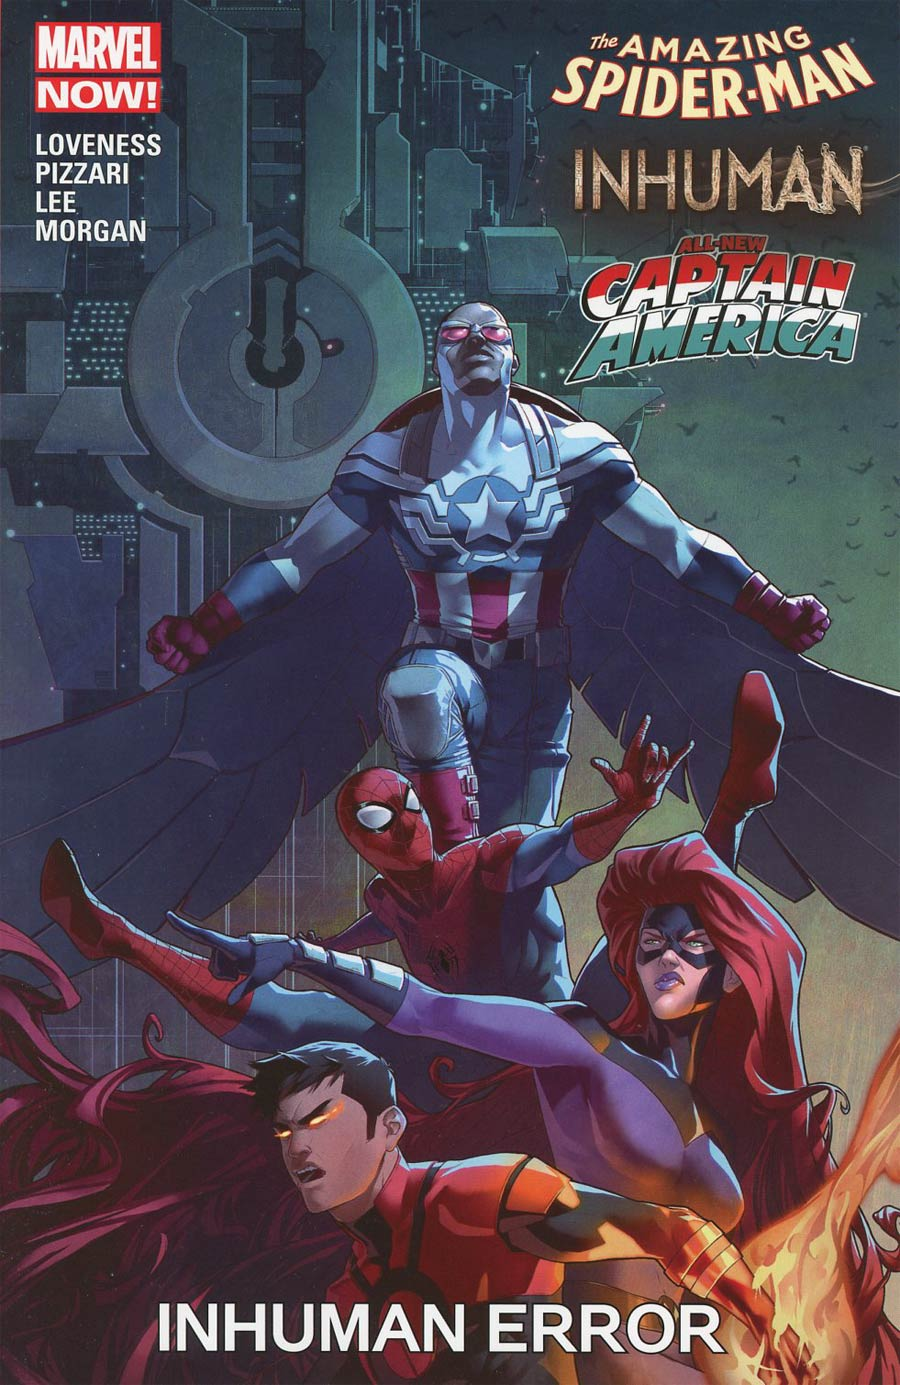 Amazing Spider-Man Inhumans All-New Captain America Inhuman Error TP